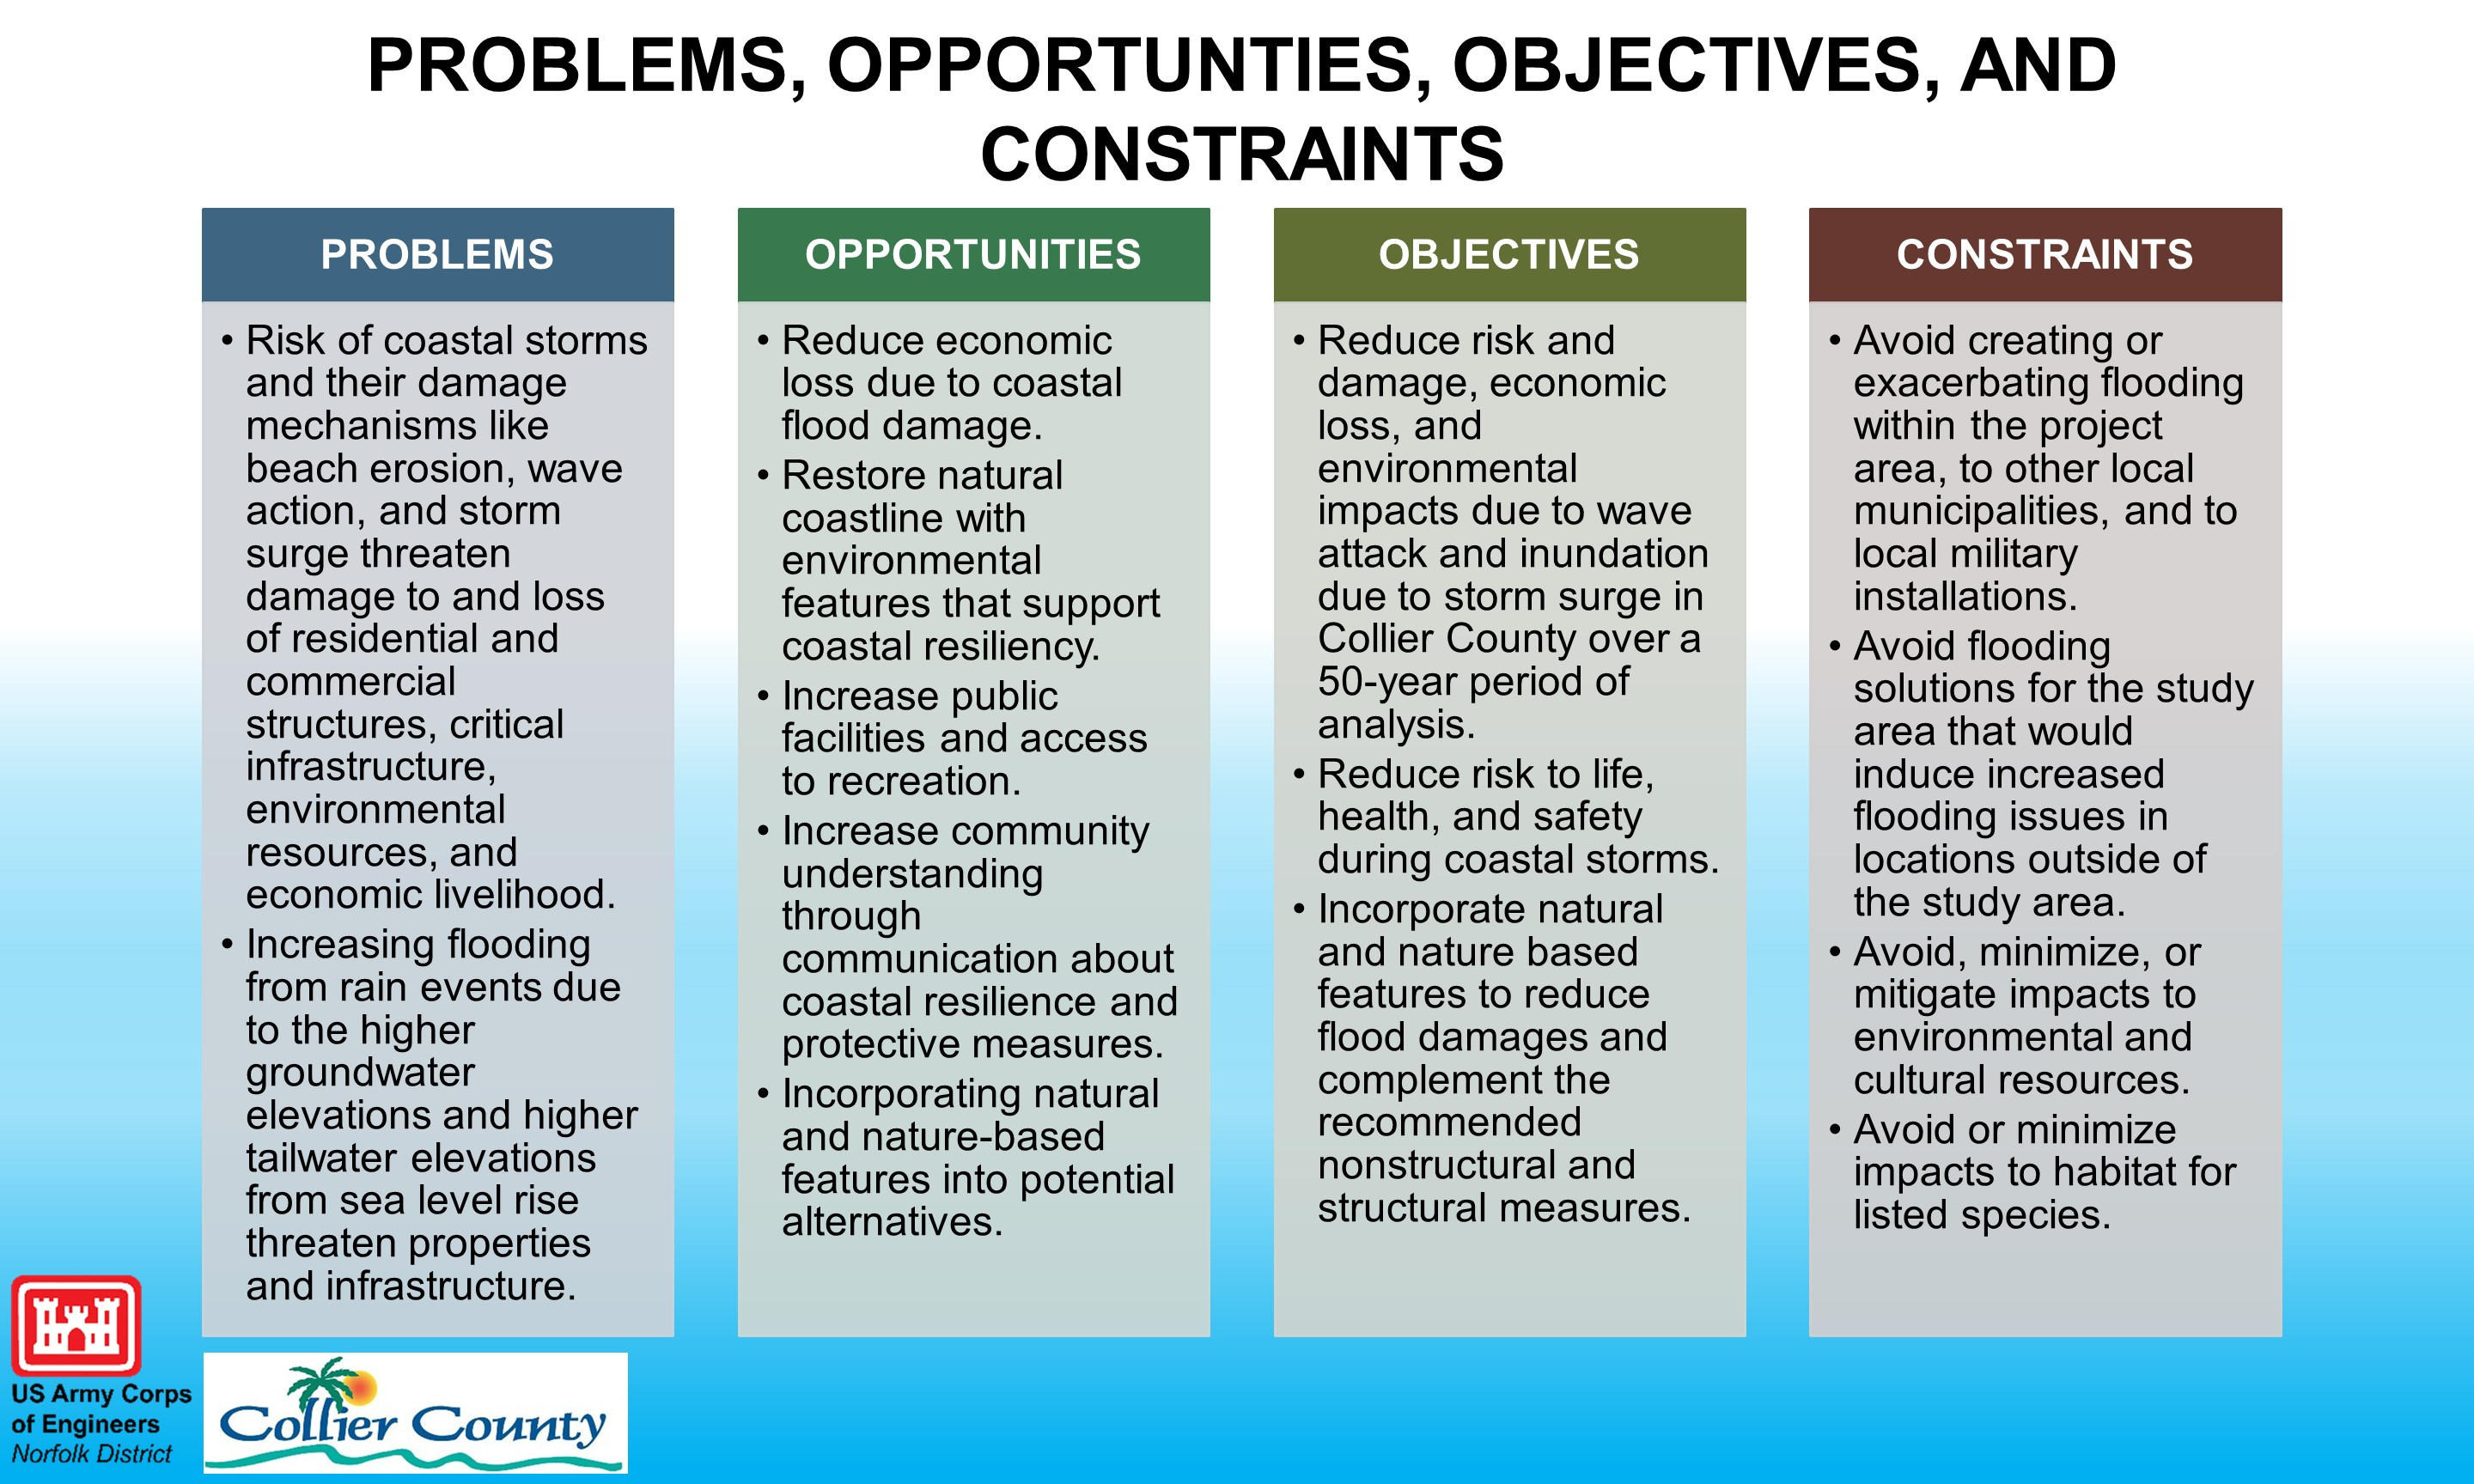 Problems, Opportunities, Objectives and Constraints